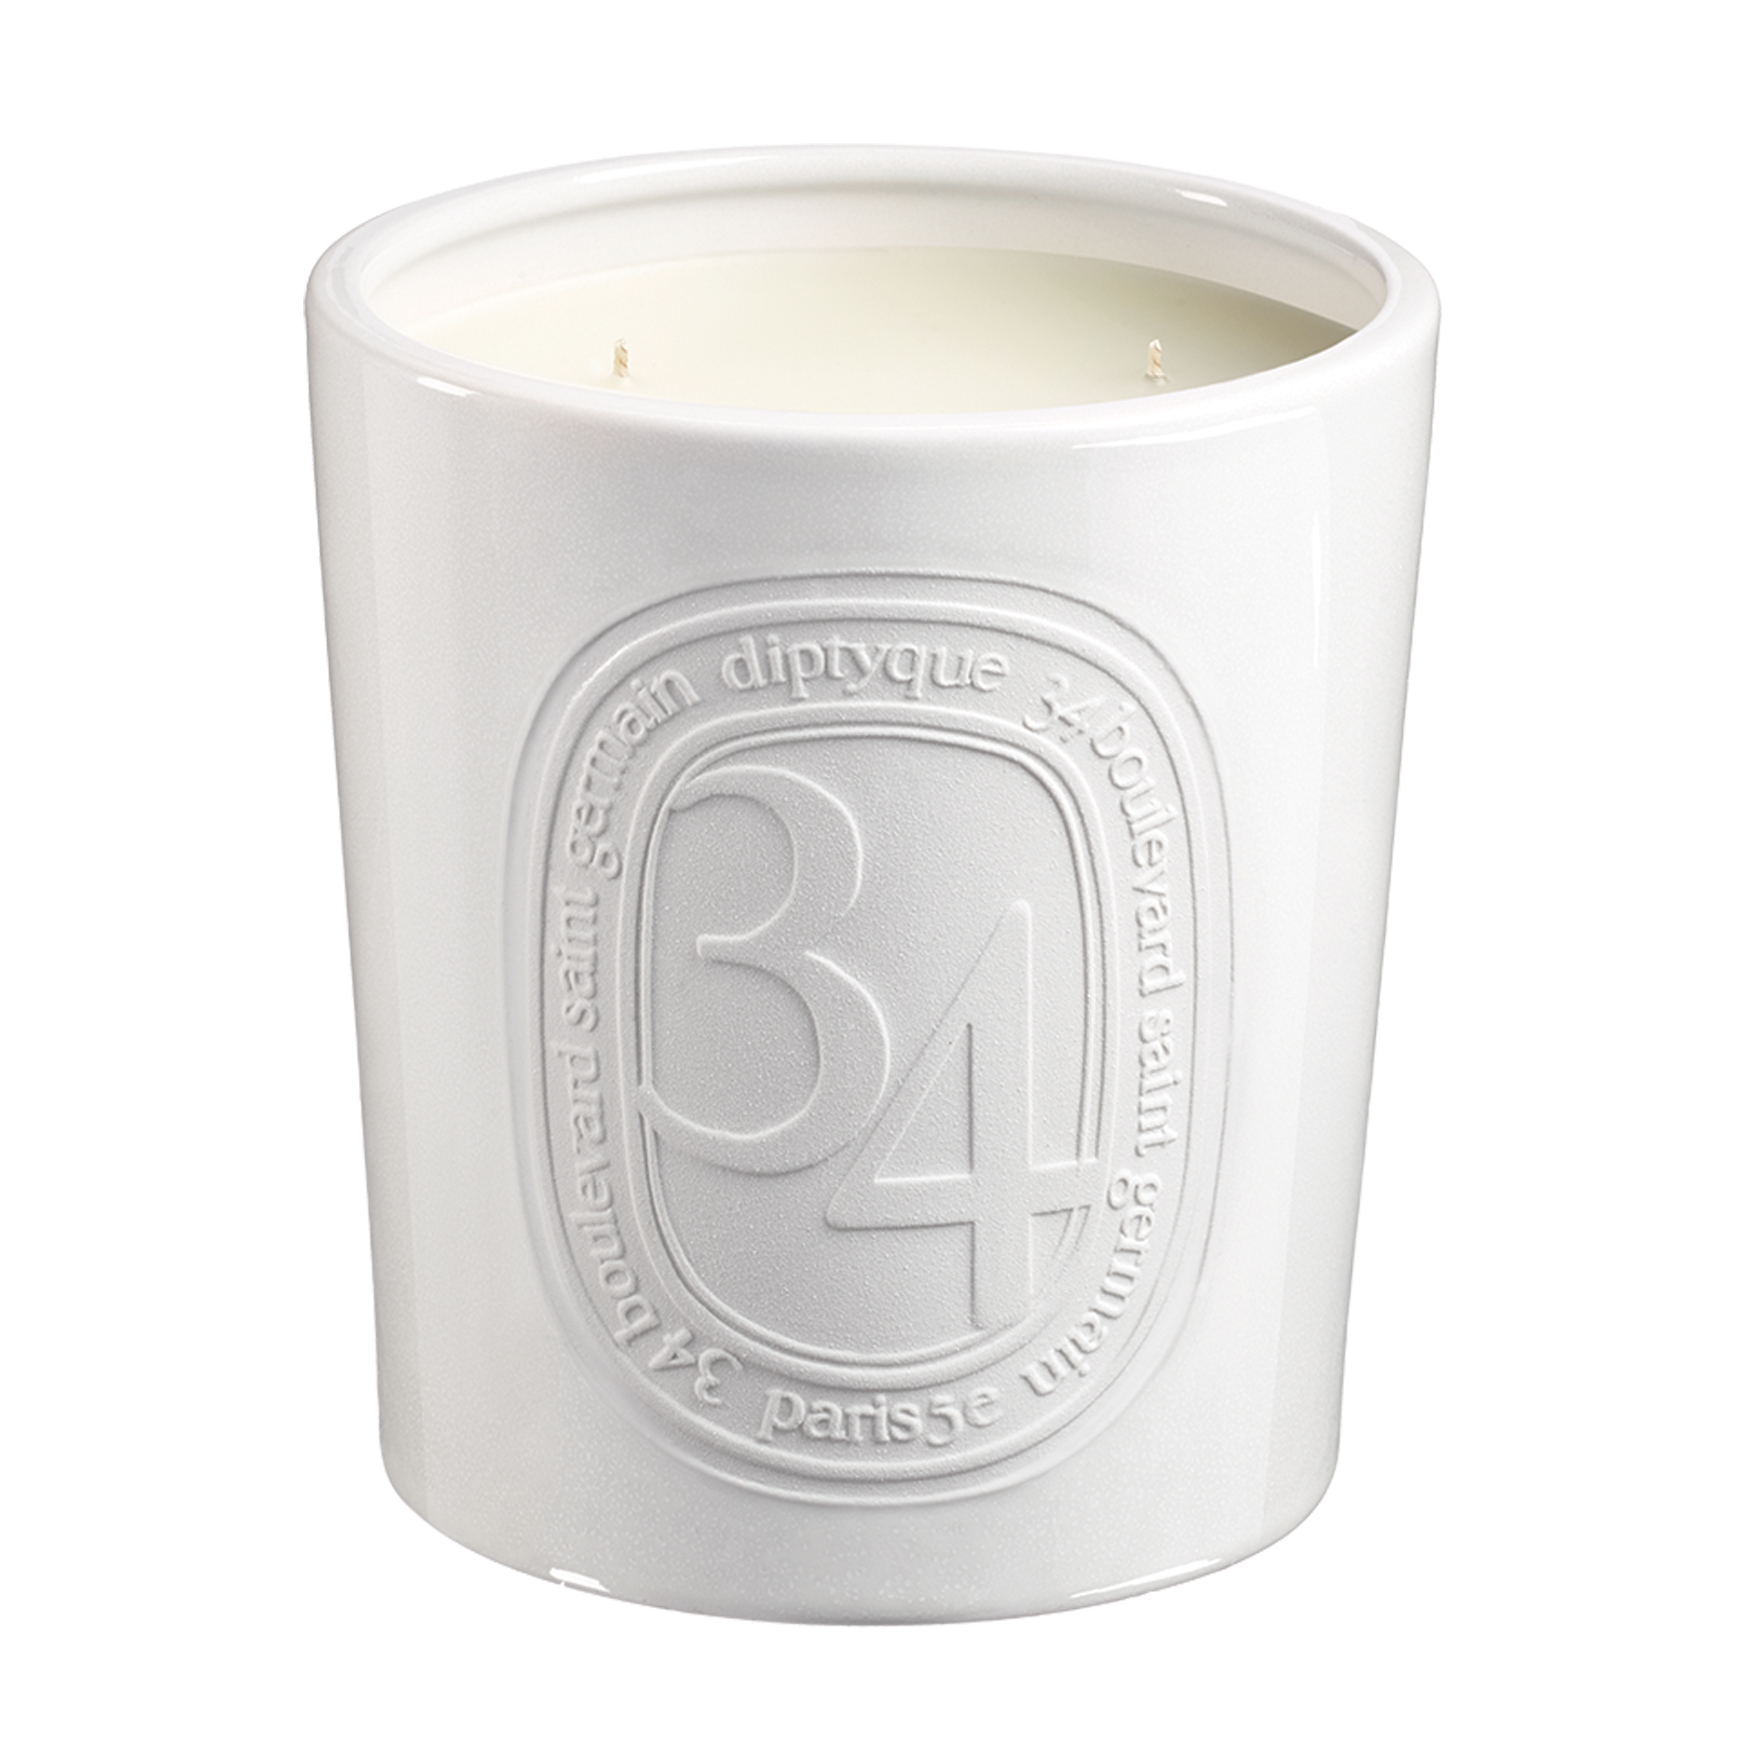 34 Blvd St.germain Scented Candle Large, , large